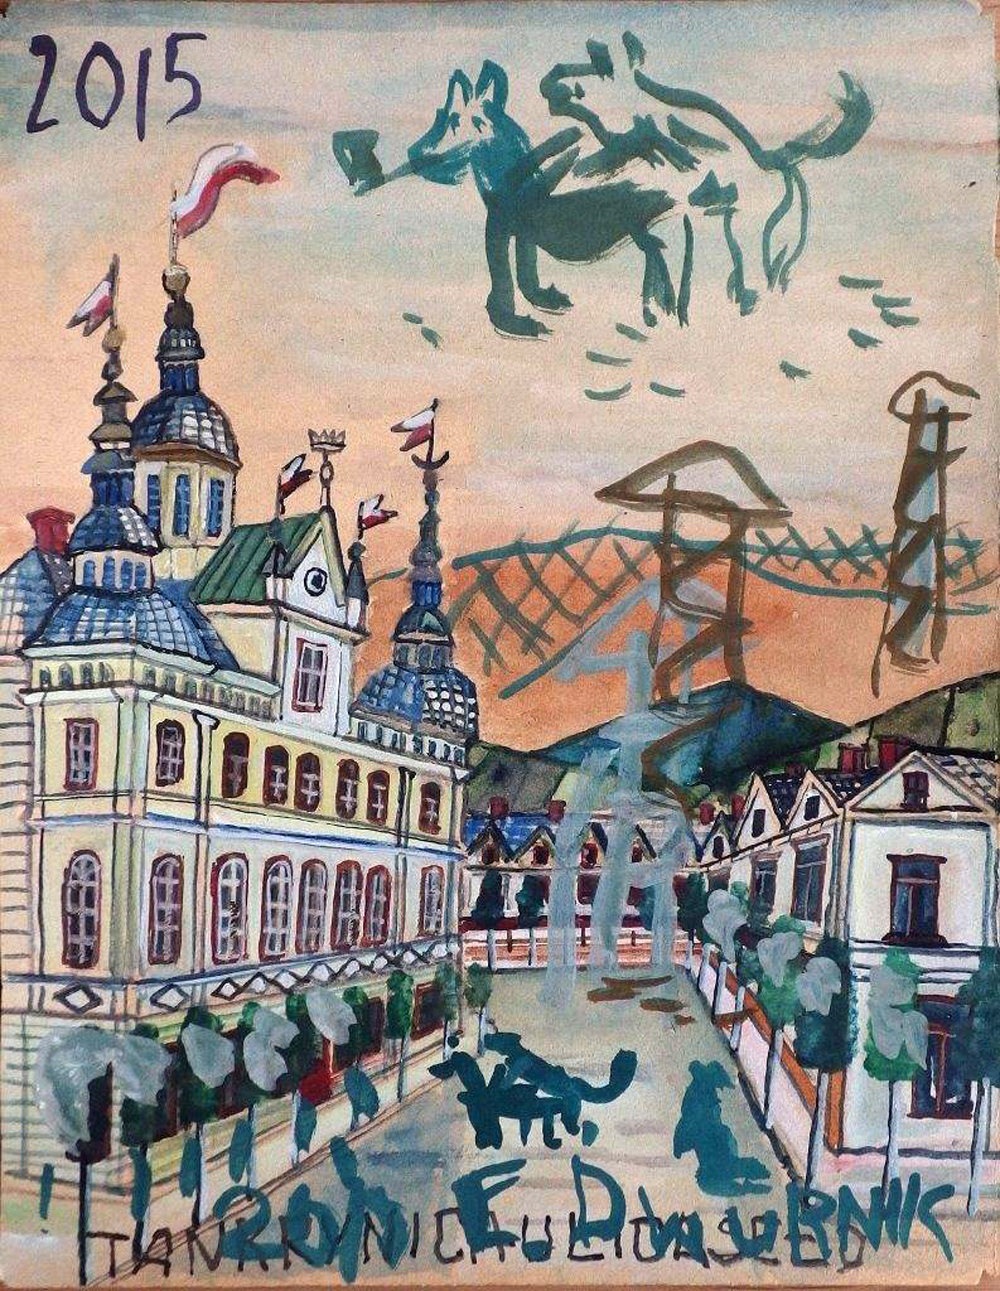 Edward Dwurnik : Wild orgy over the town